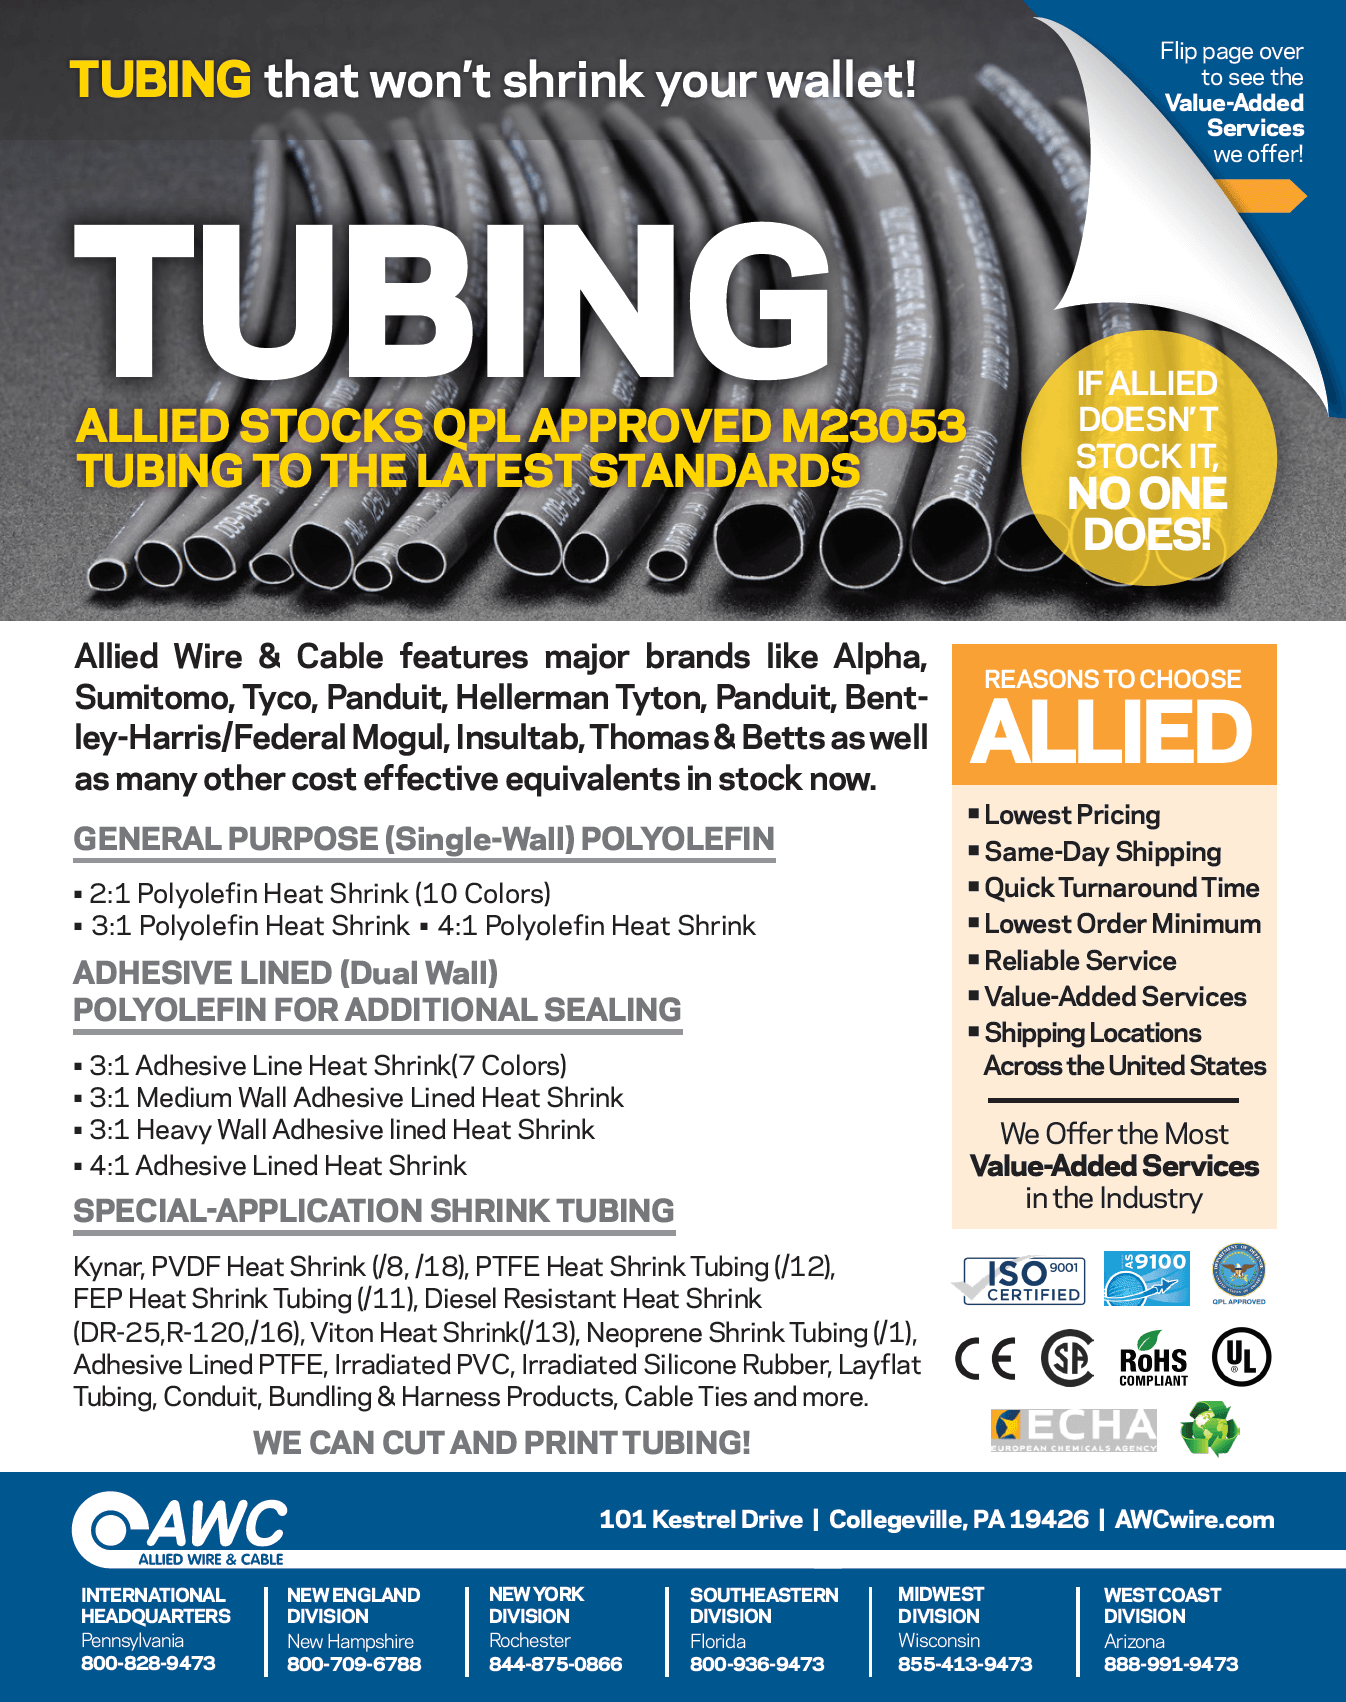 Tubing Line Card from Allied Wire & Cable